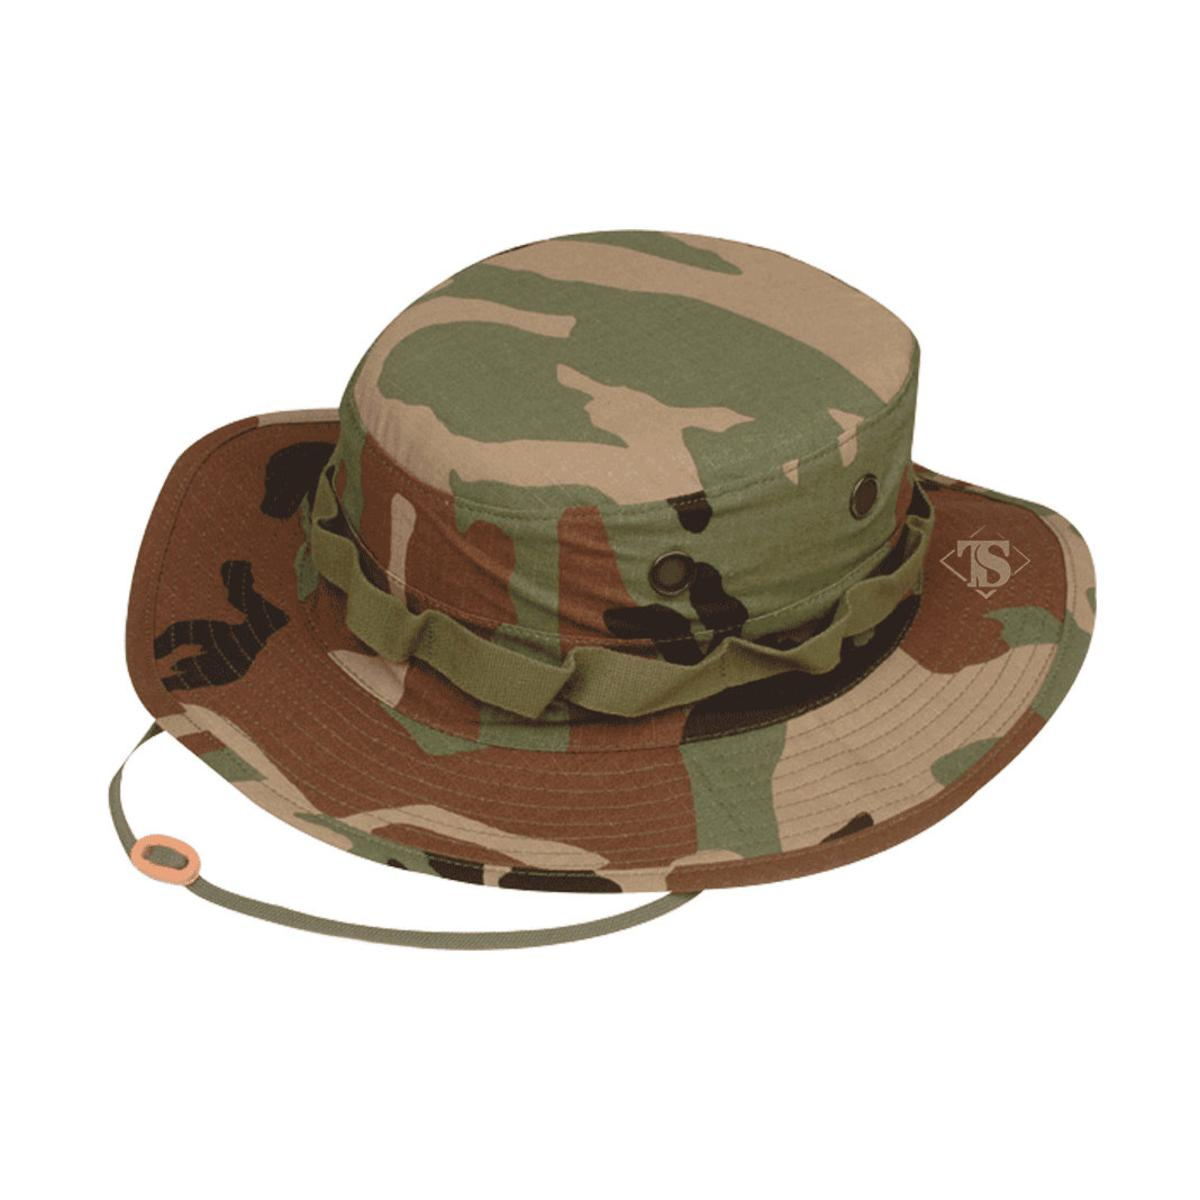 Tru-Spec 3223 Cotton Rip-Stop Boonie Hat, Bucket Hat, Woodland Camo by Altanco